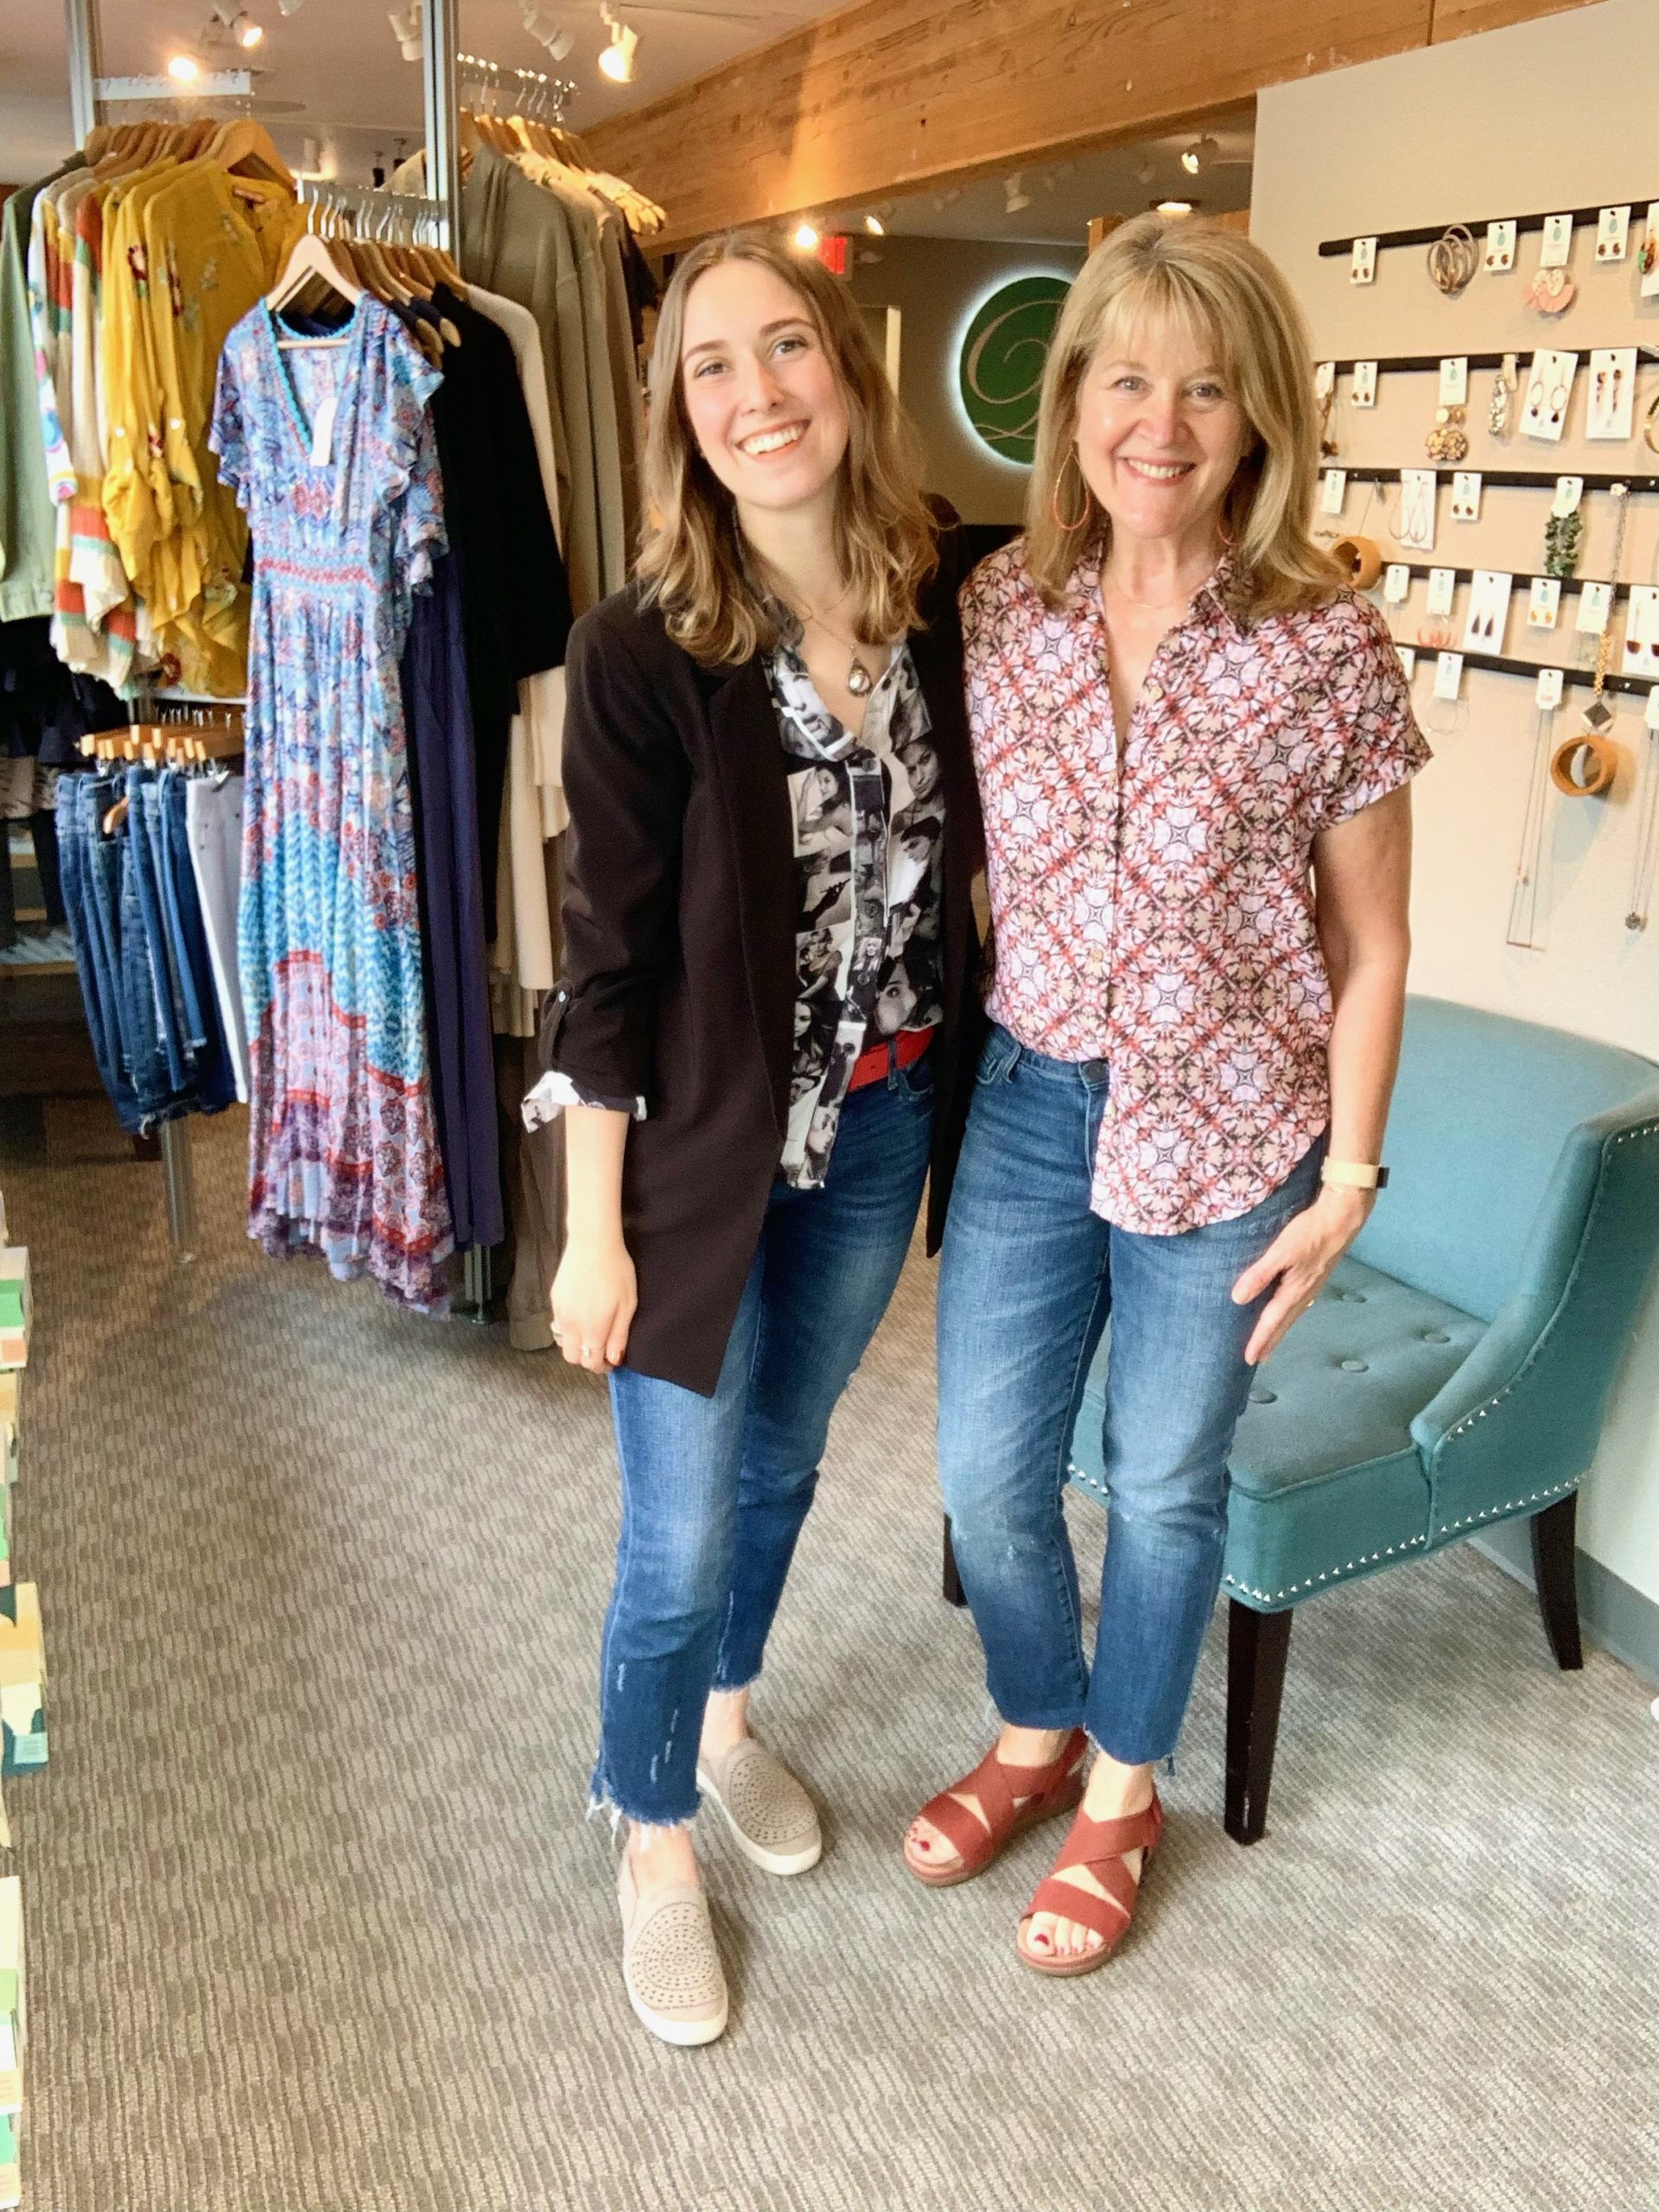 Personal Stylist, Nicole Cameron and Client